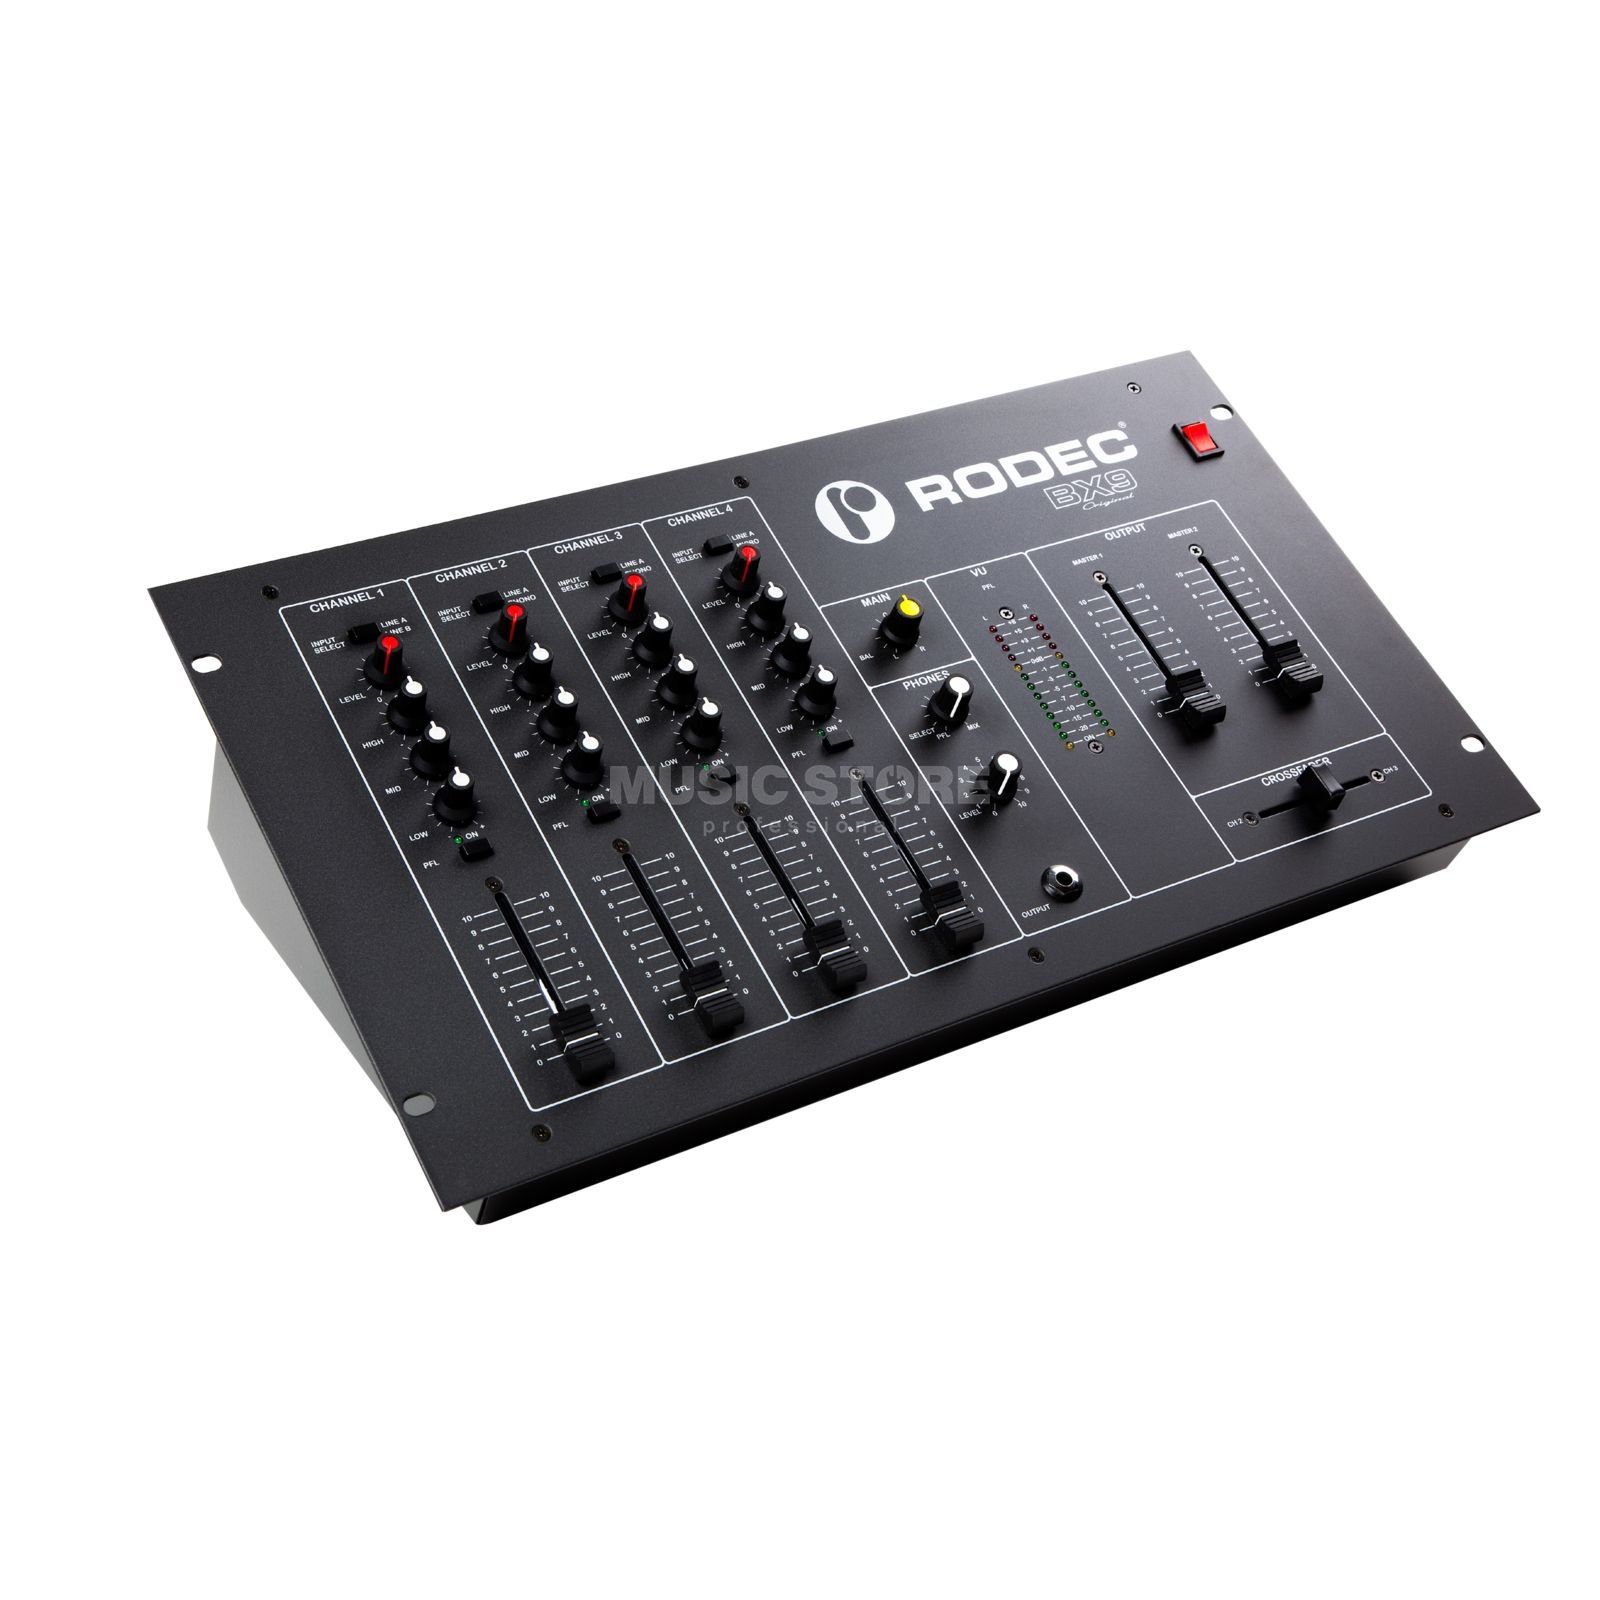 "Rodec BX9 Original 4-Channel Club Mixer, 19"" Produktbillede"